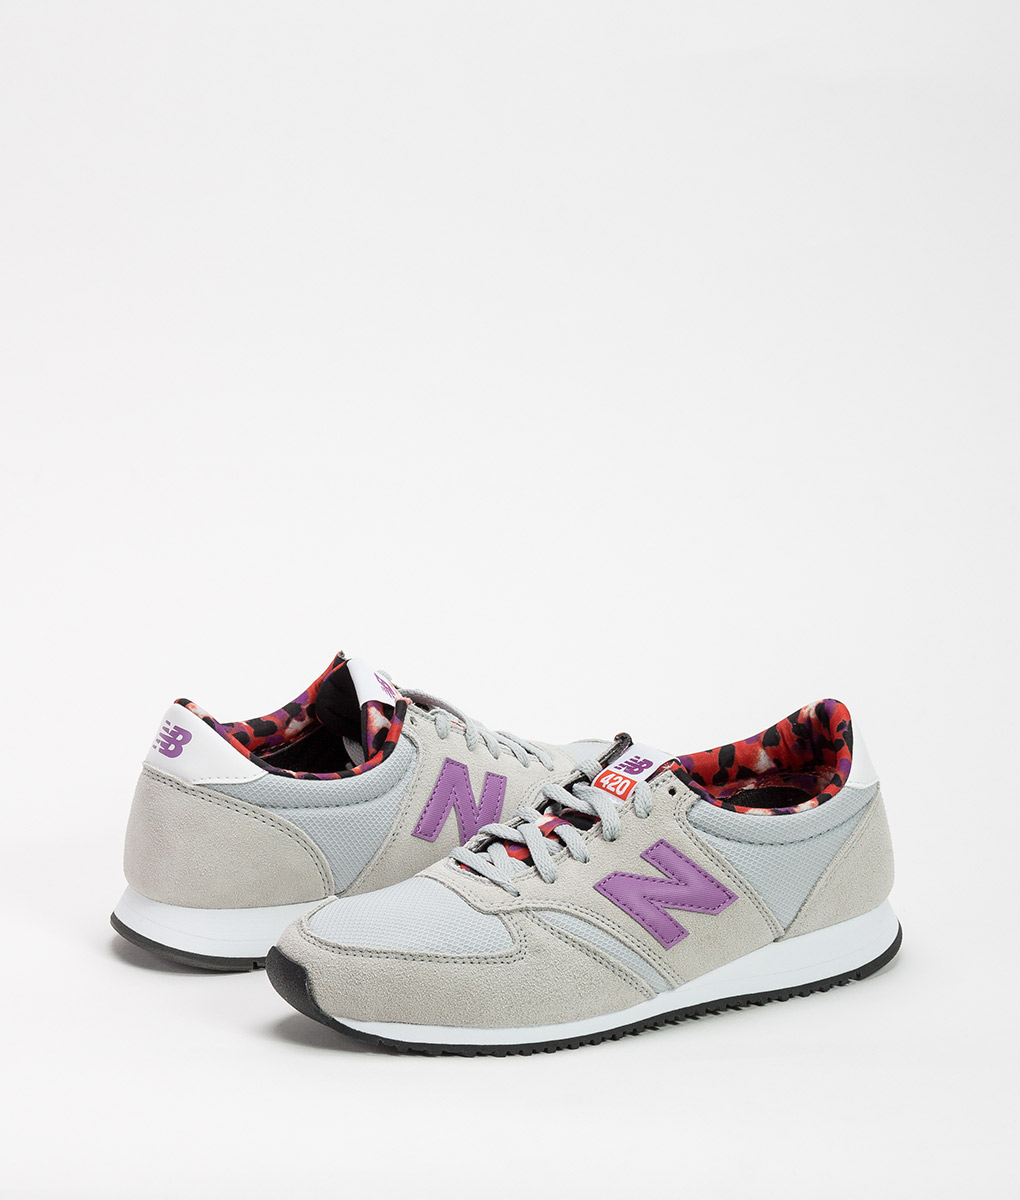 premium selection 66658 ef735 NEW BALANCE Women Running Shoes WL420 Grey Purple 69.99 1